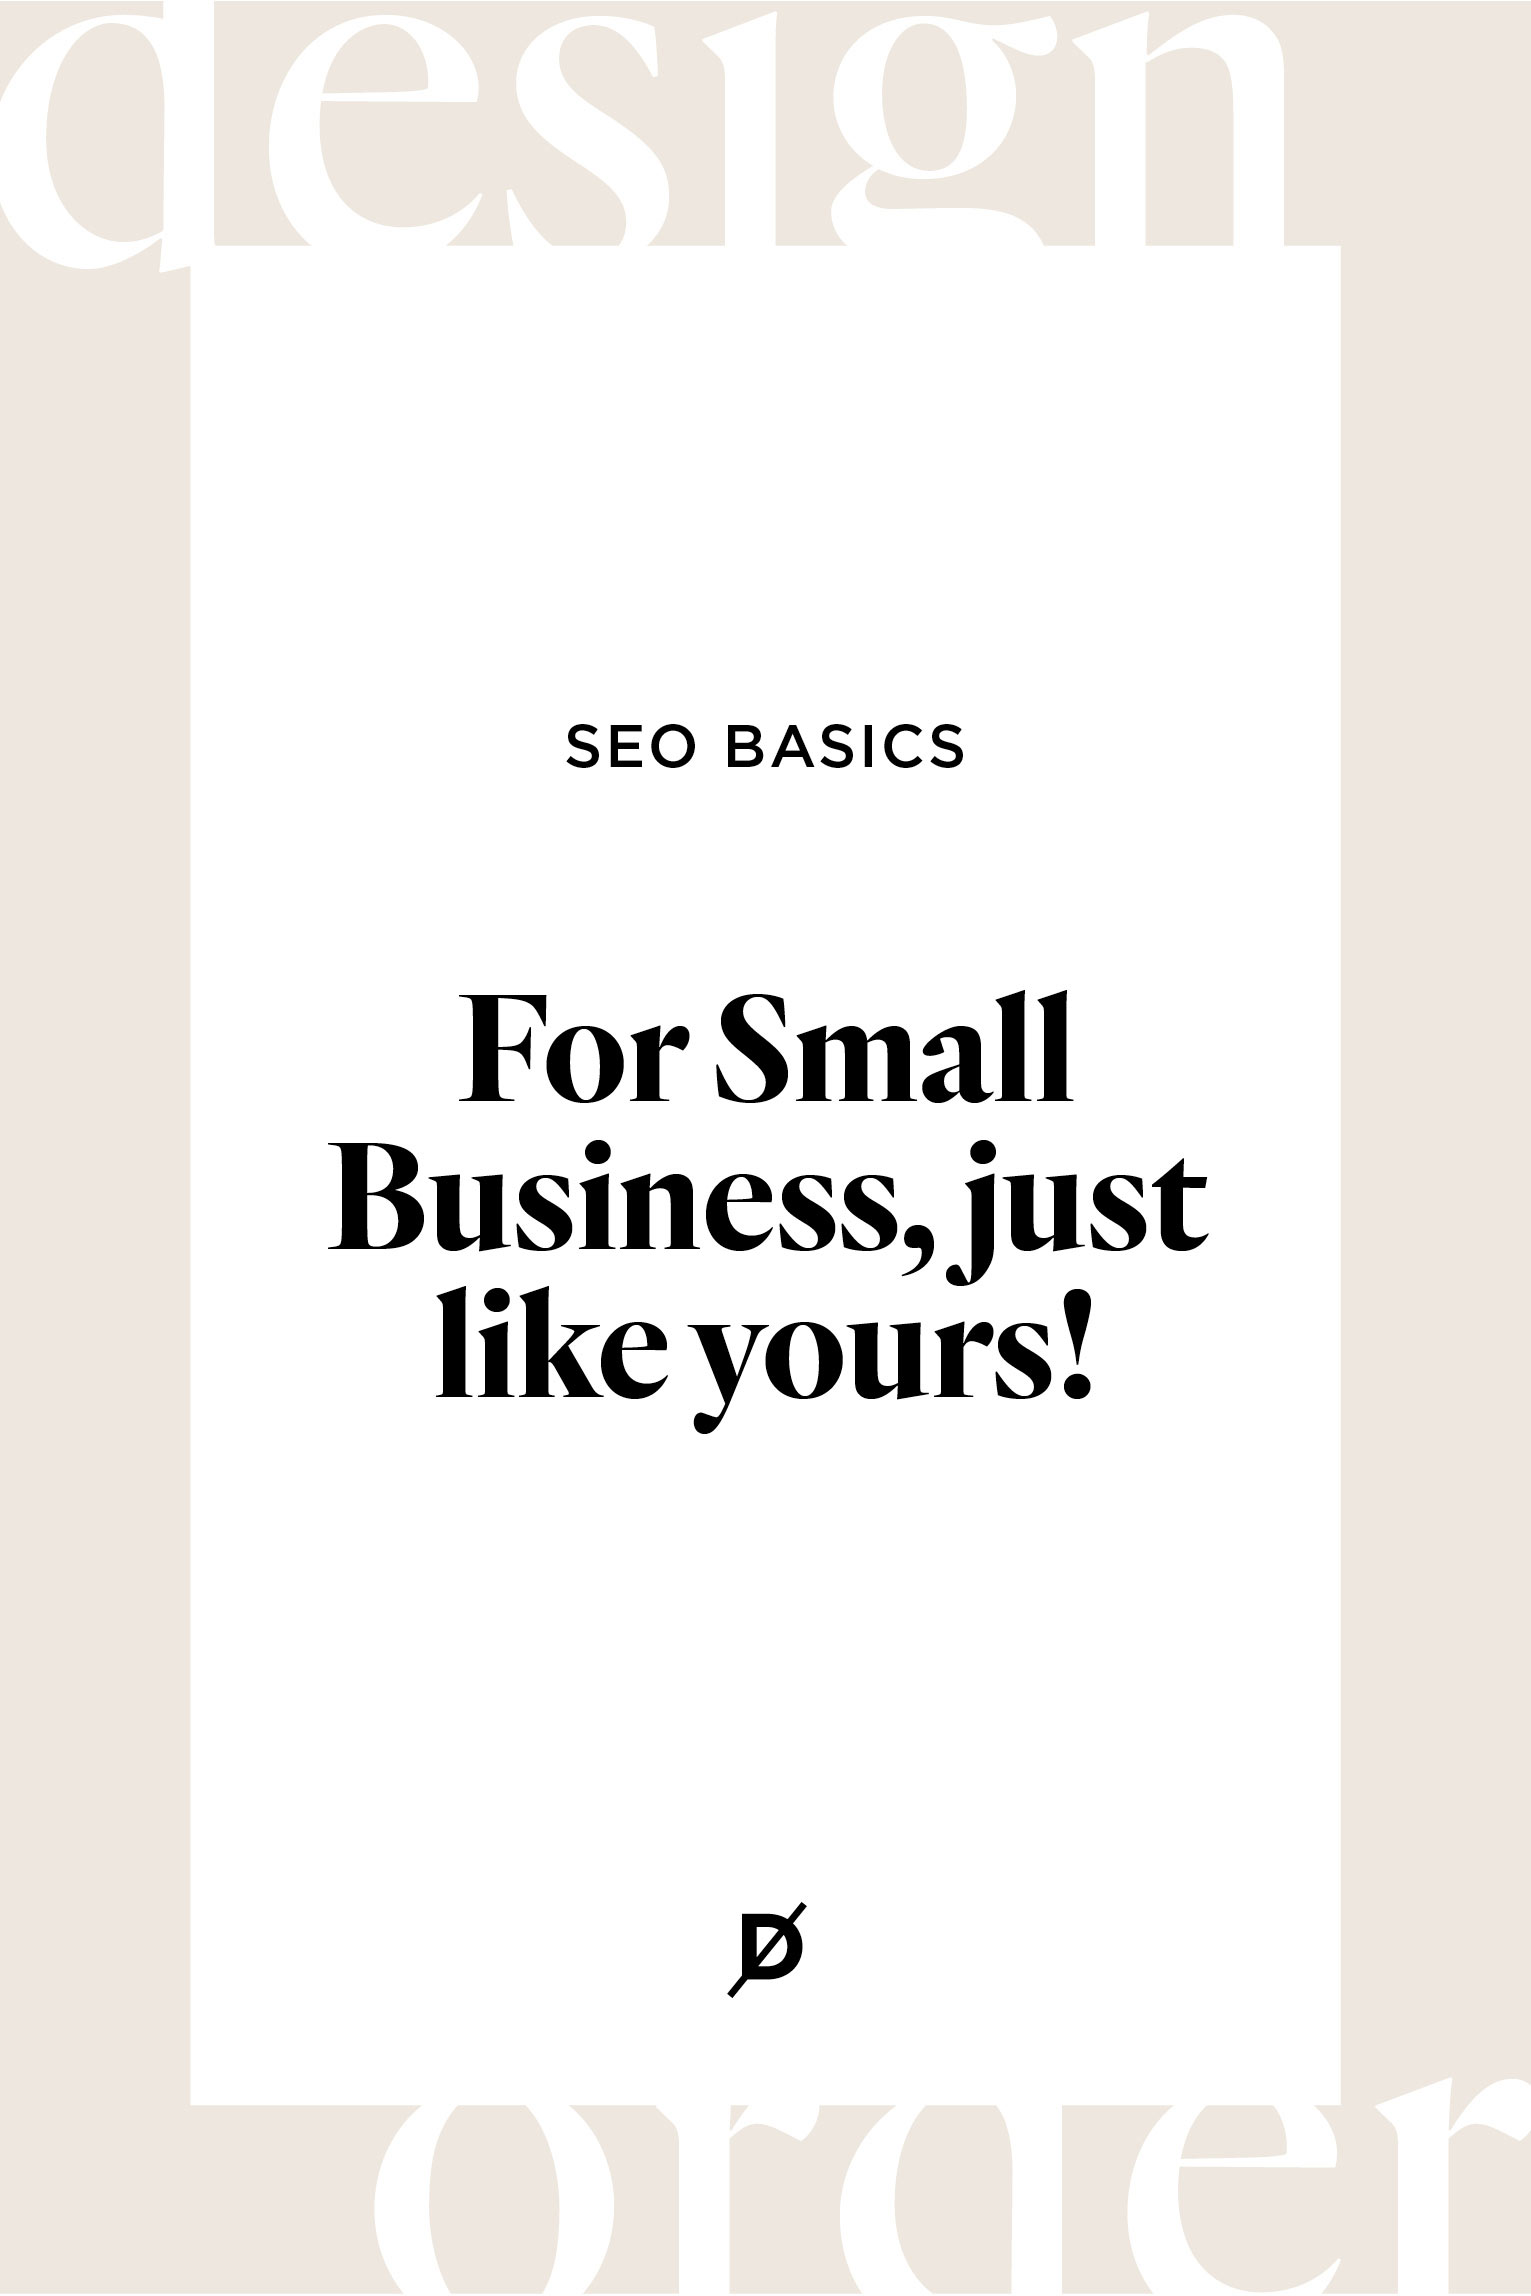 SEO Basics for Small Business (just like yours!)